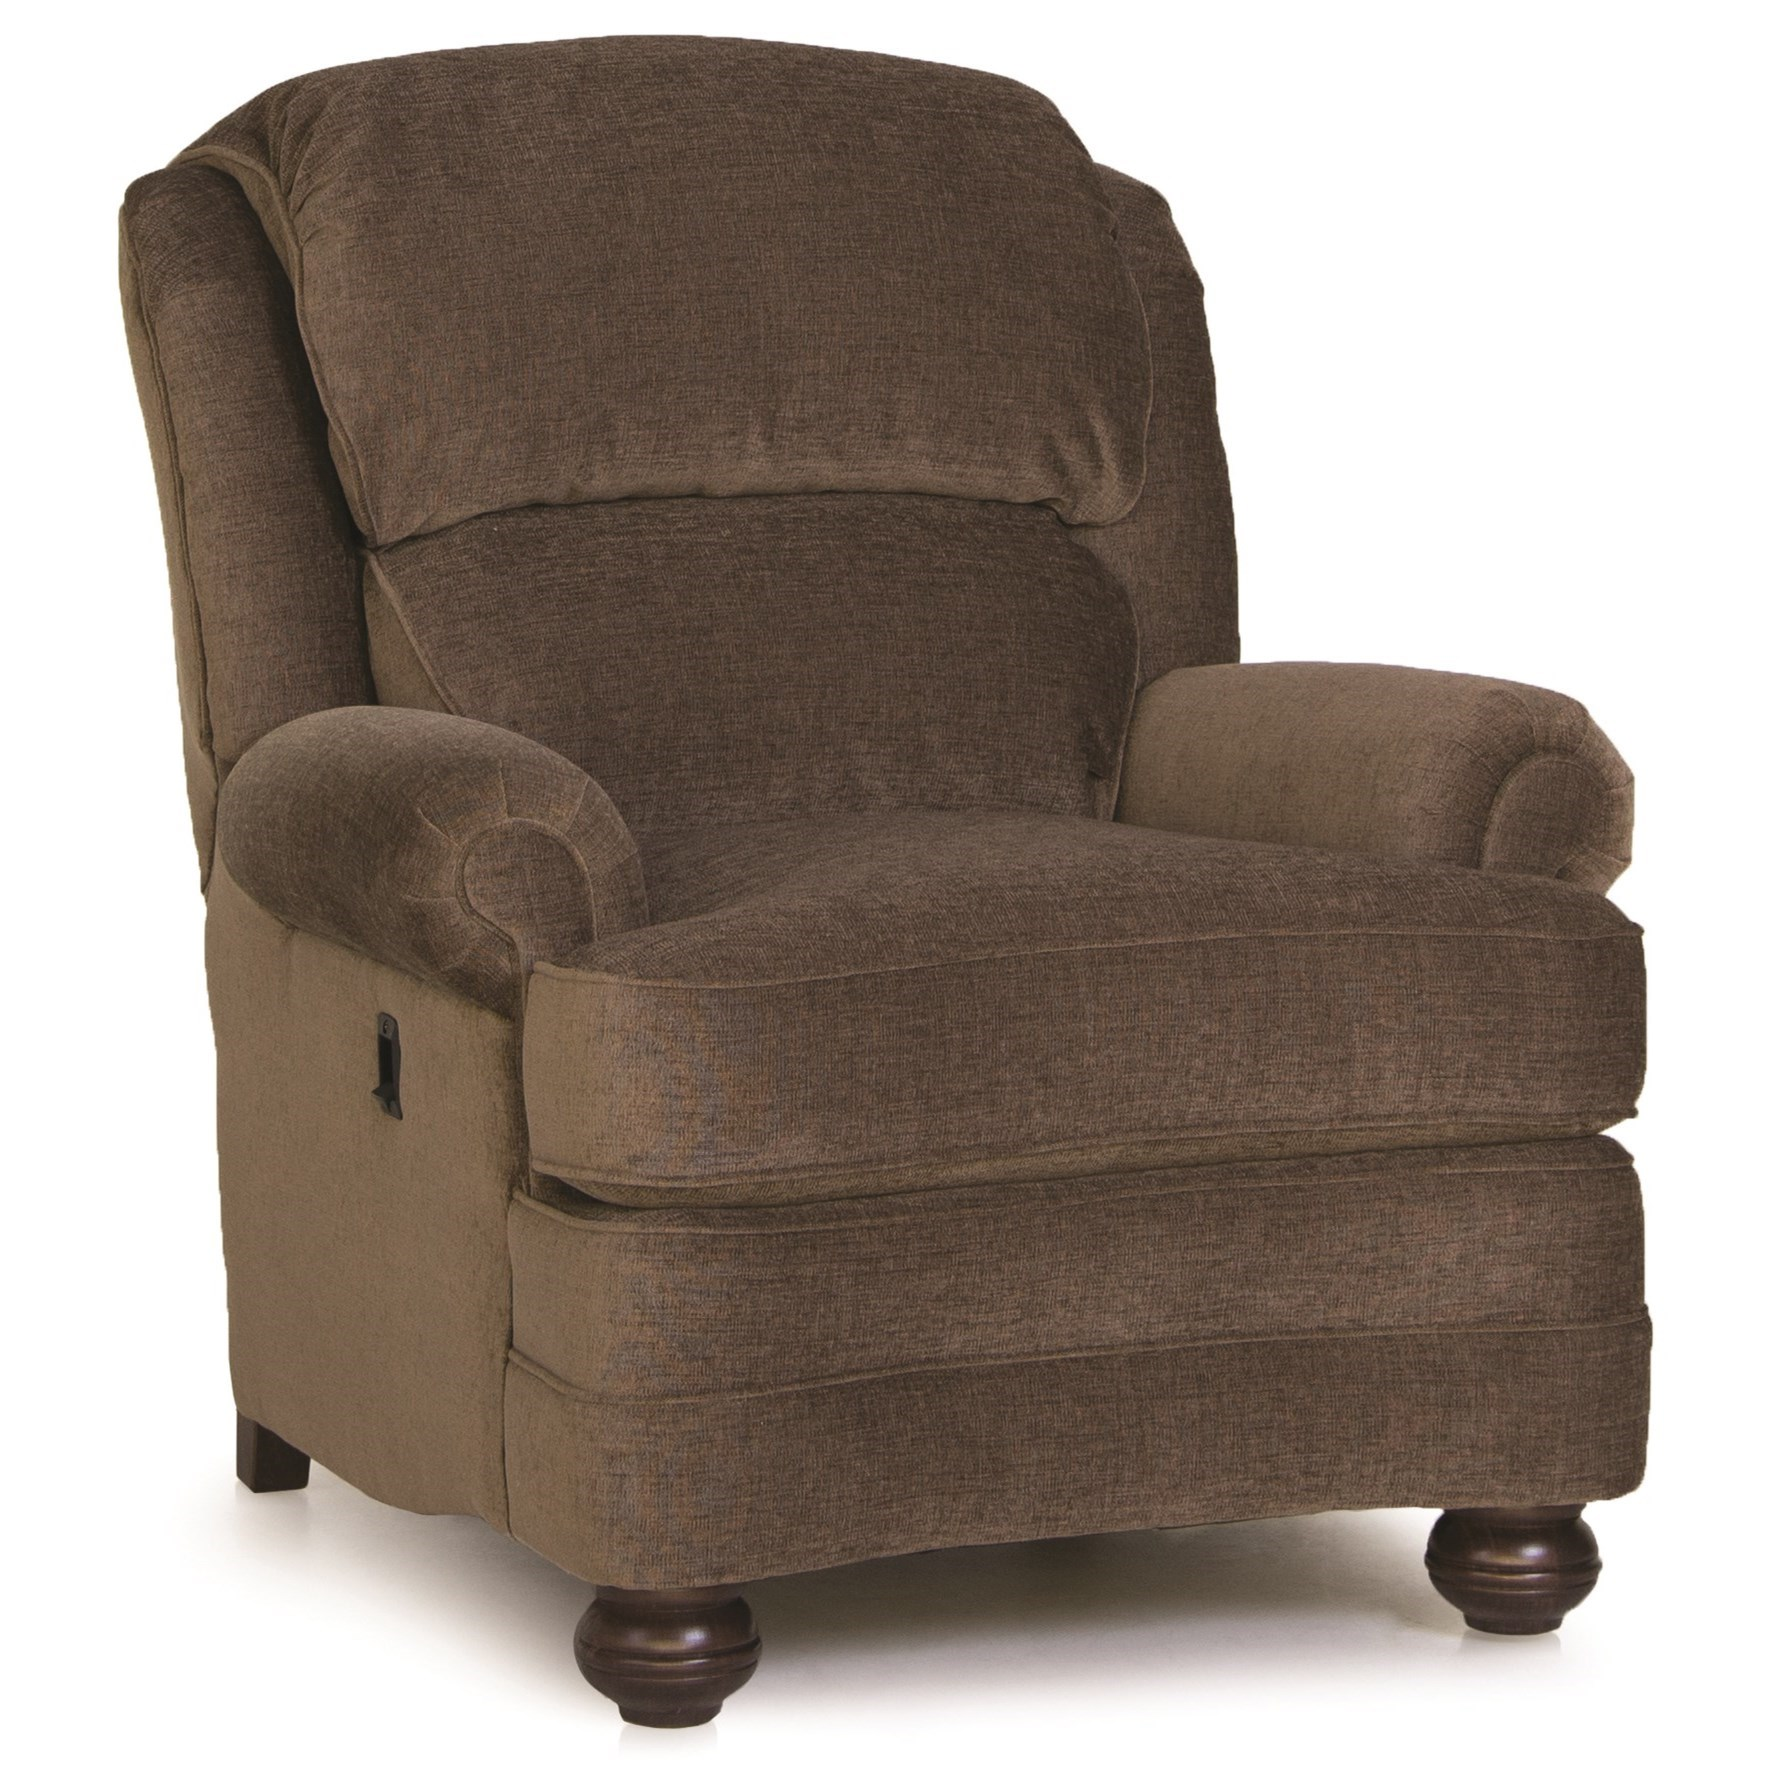 988 Tilt-Back Reclining Chair by Smith Brothers at Westrich Furniture & Appliances